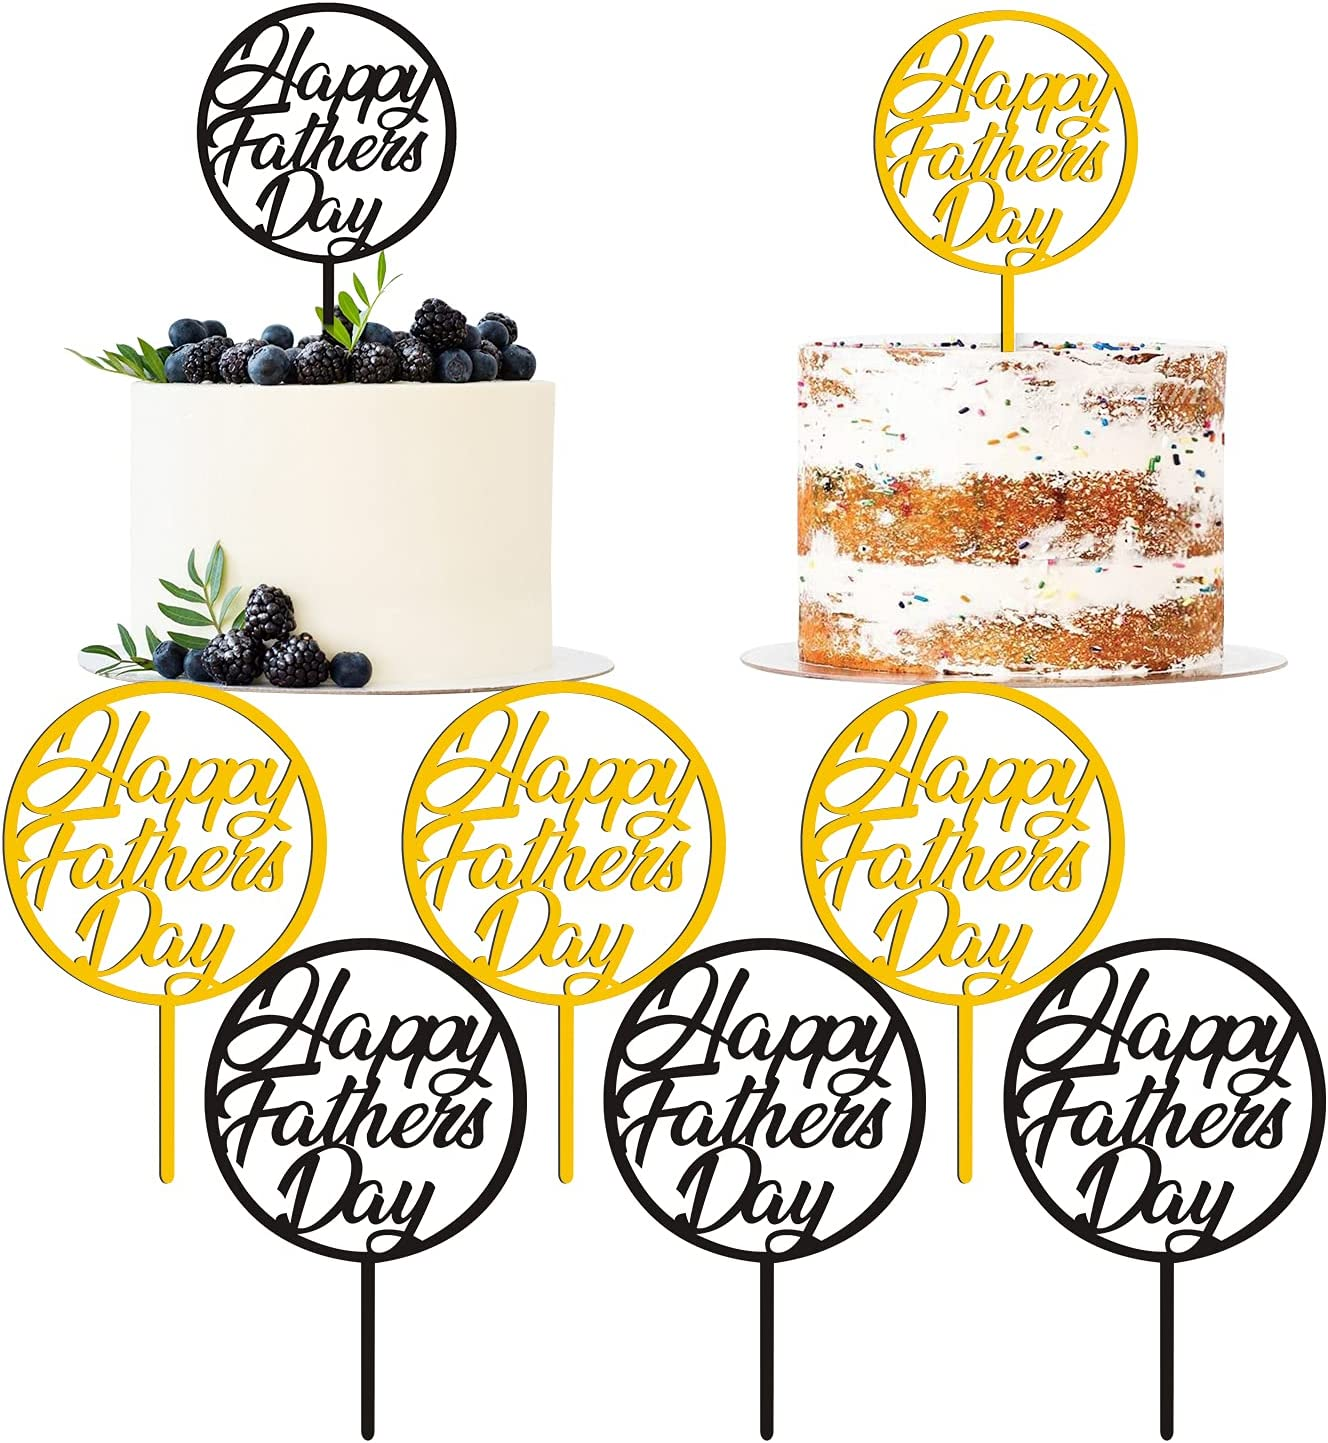 Happy Father's Day Cake Topper 12Pcs Fathers Day Decorations Cupcake Picks Gold&Black Acrylic Cake Topper Dad Party Food Decoration Father's Day Party Supplies Happy Birthday Fathers Day Party Favors